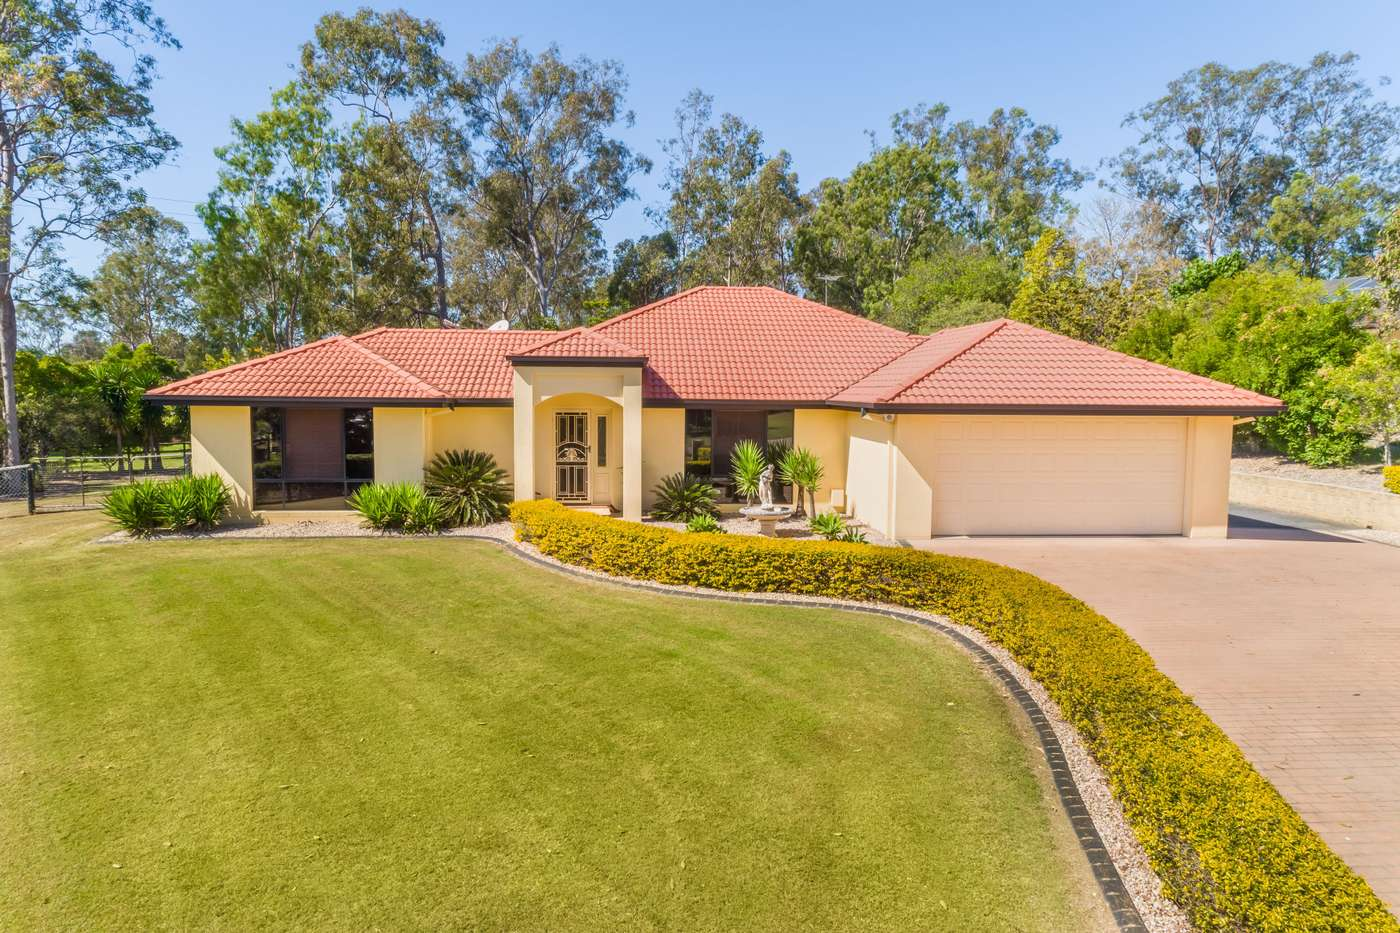 Main view of Homely house listing, 9 Bentley Court, Joyner, QLD 4500